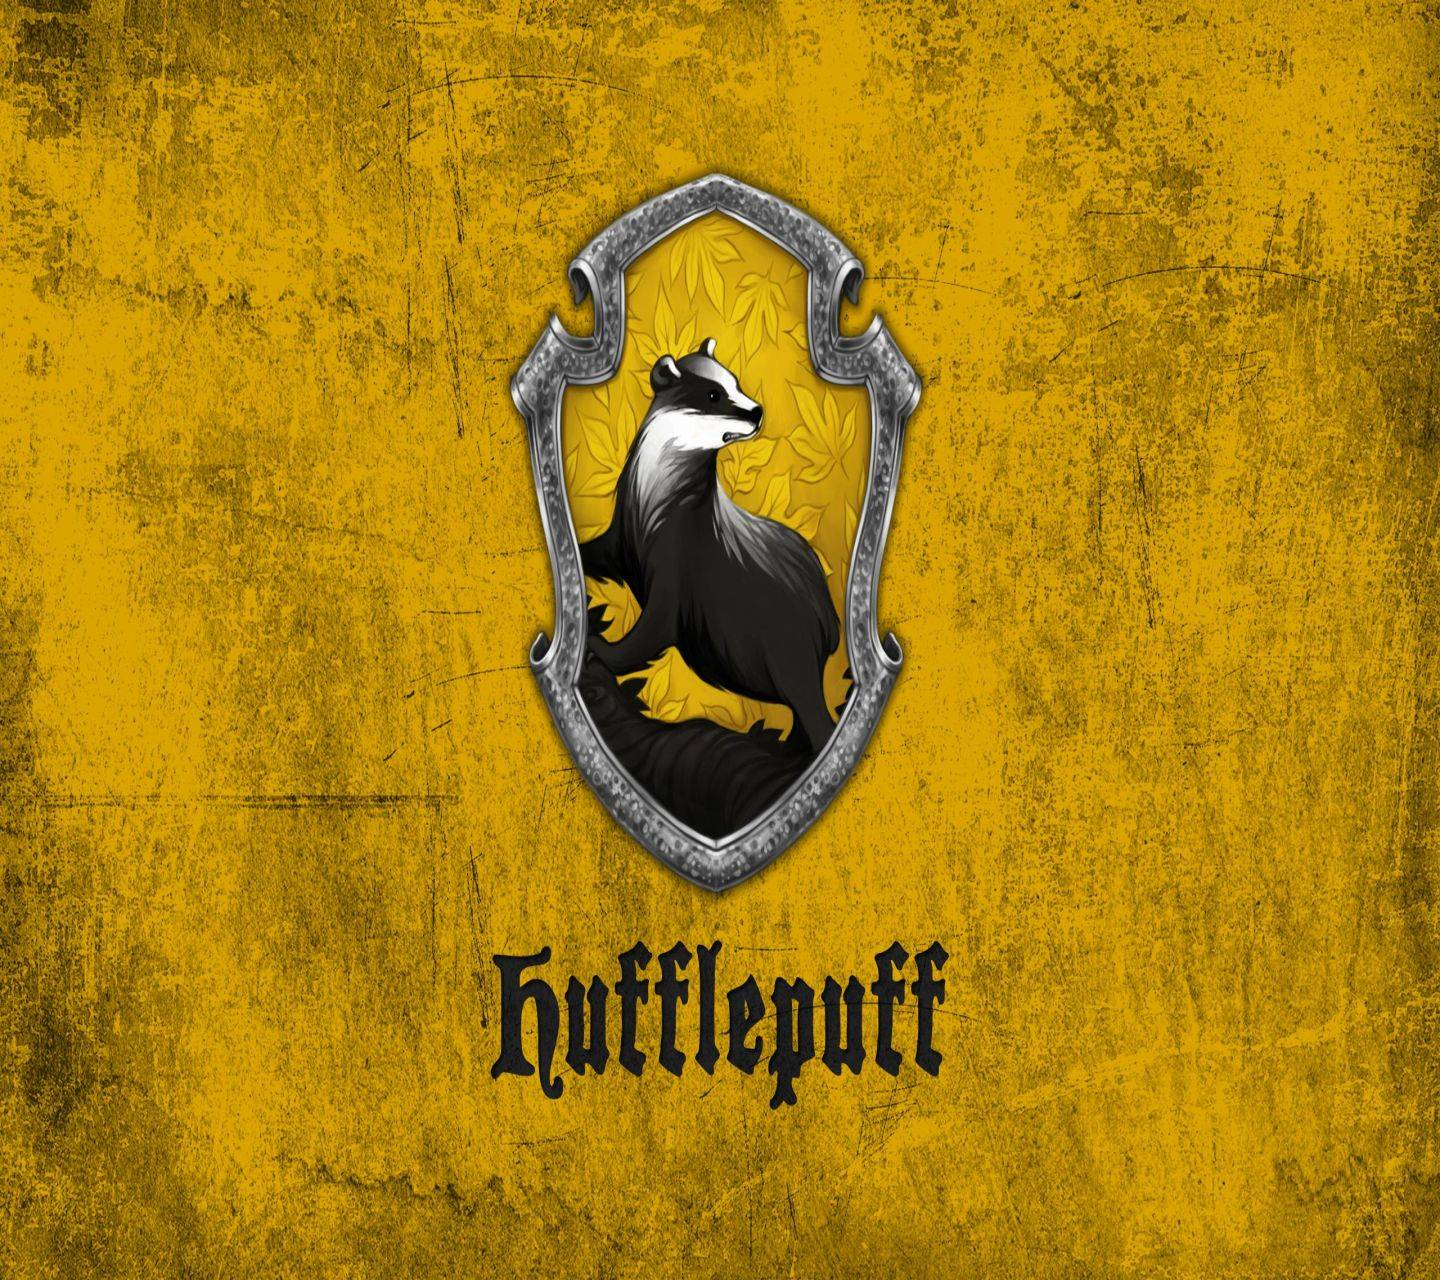 hufflepuff Wallpapers by chicovissk